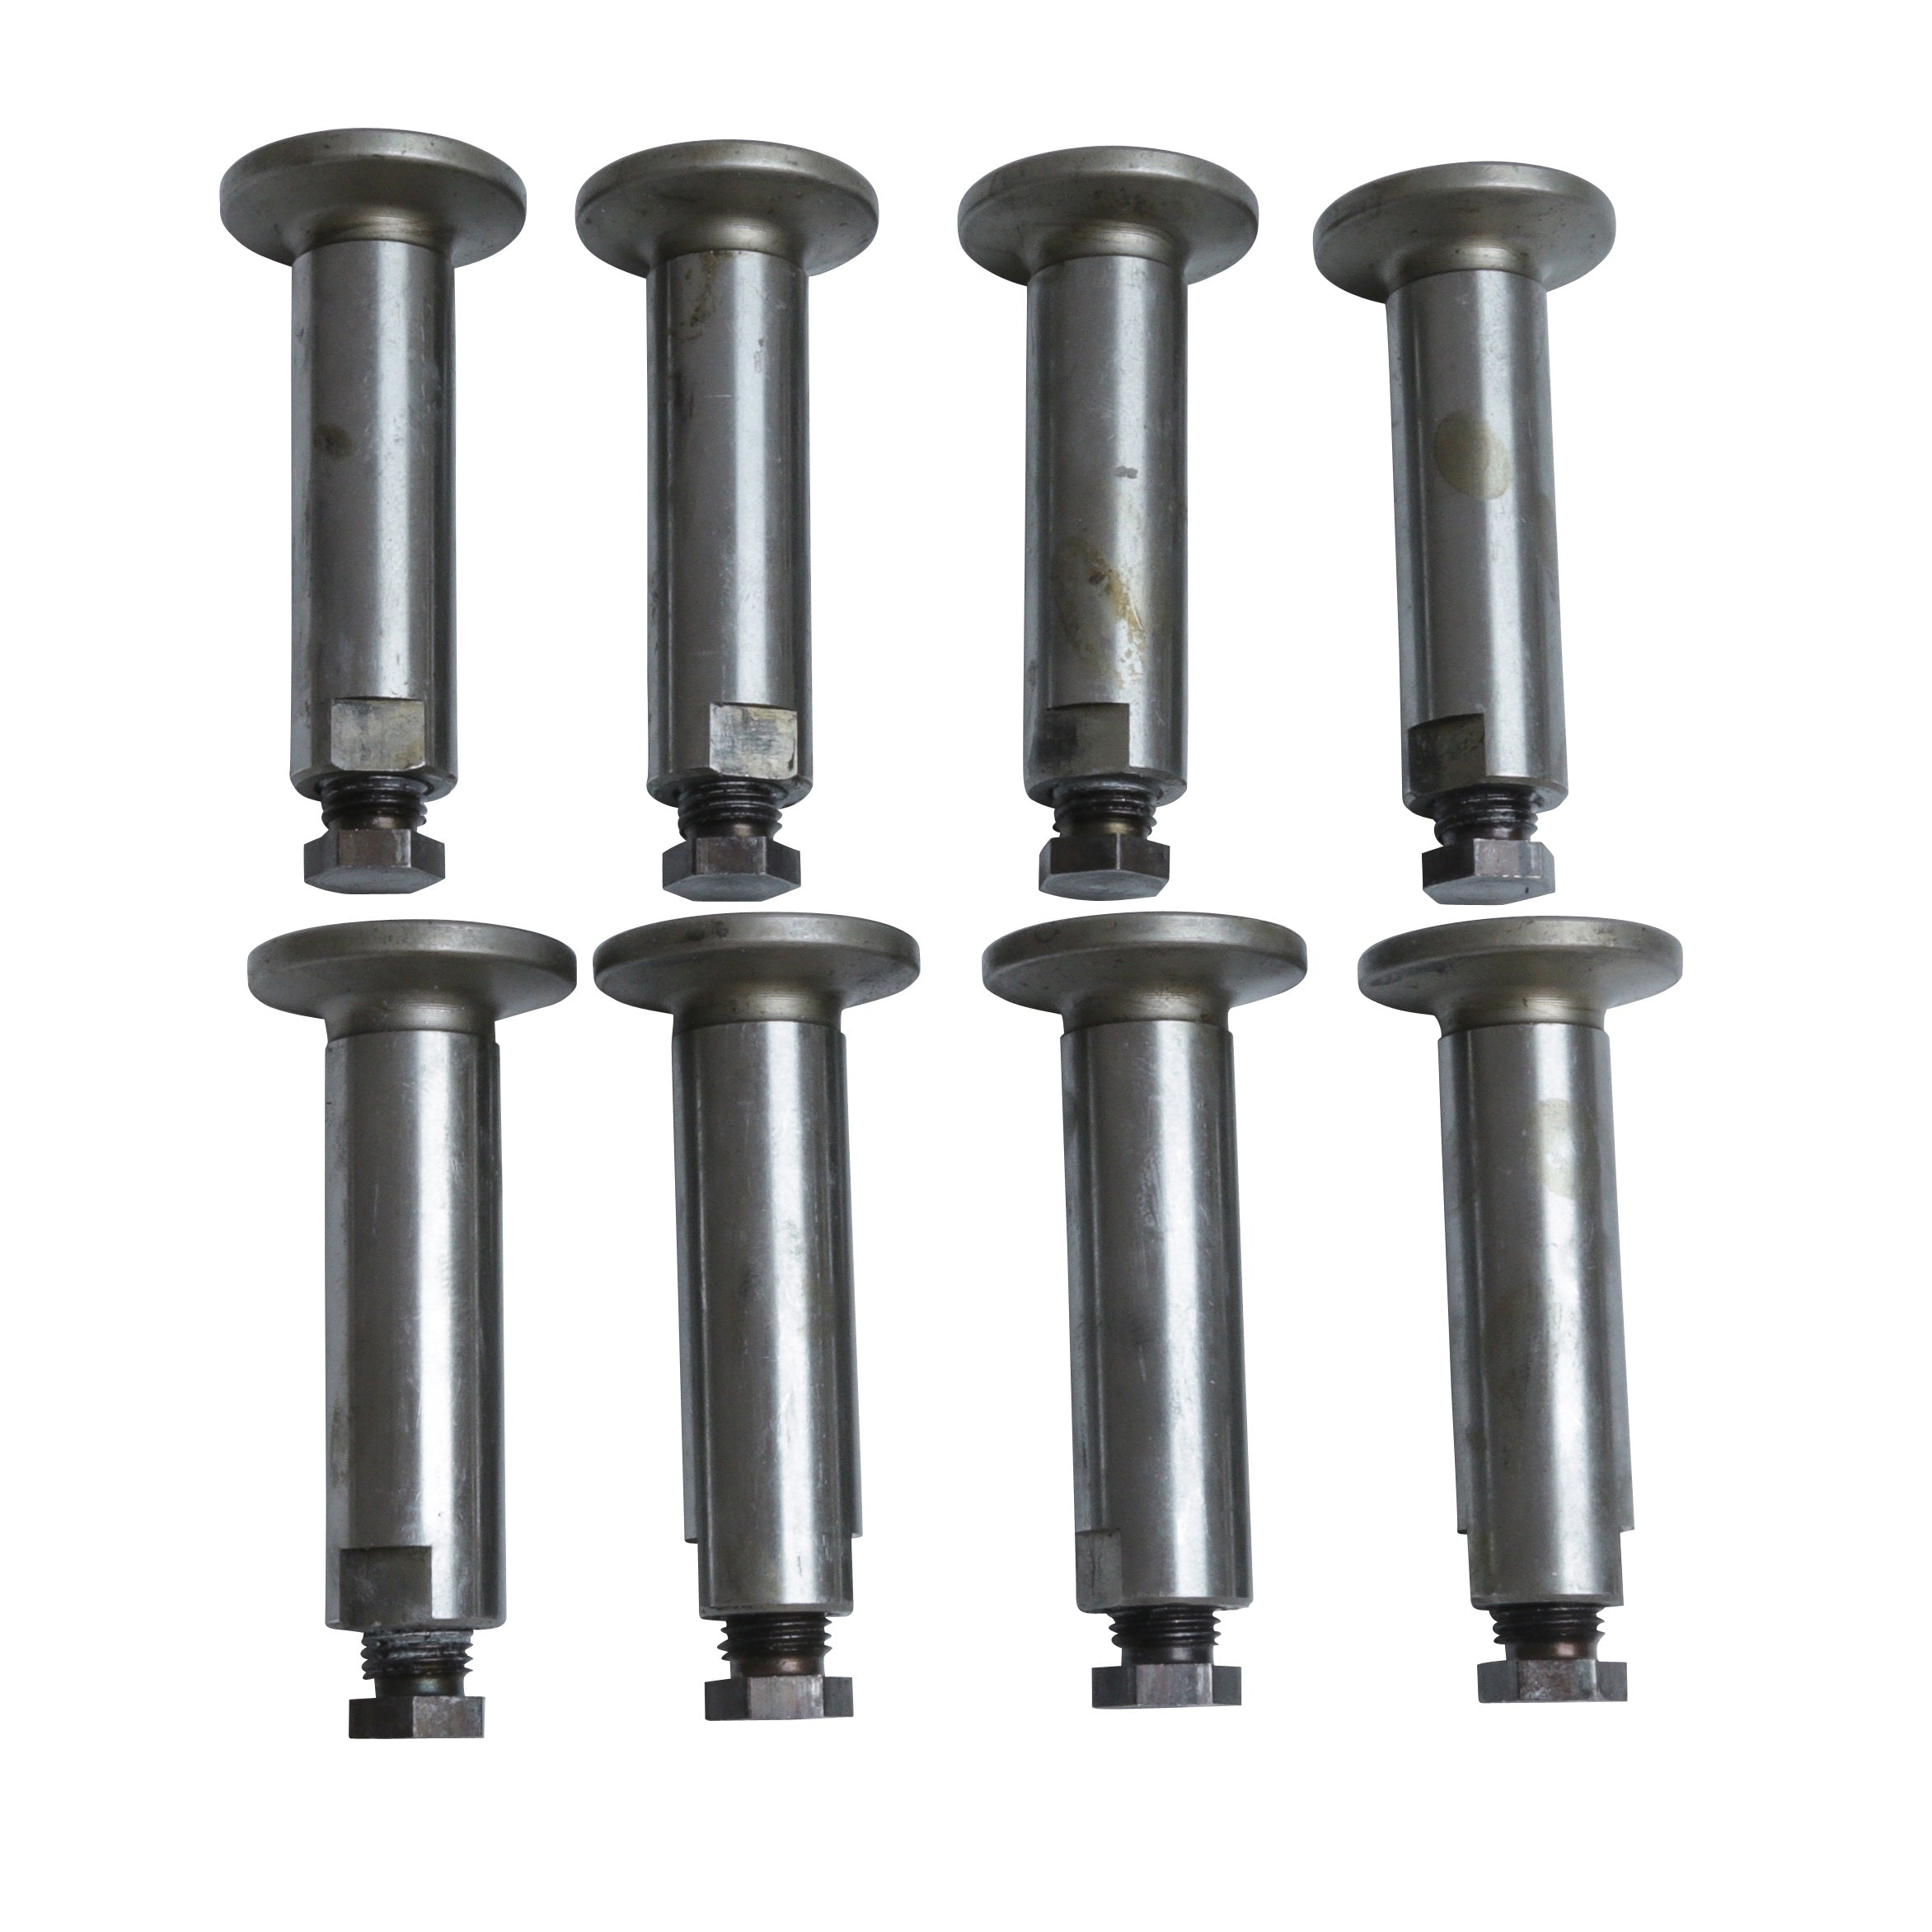 Tappets (Adjustable - Single-lock Style) • 1928-34 Ford